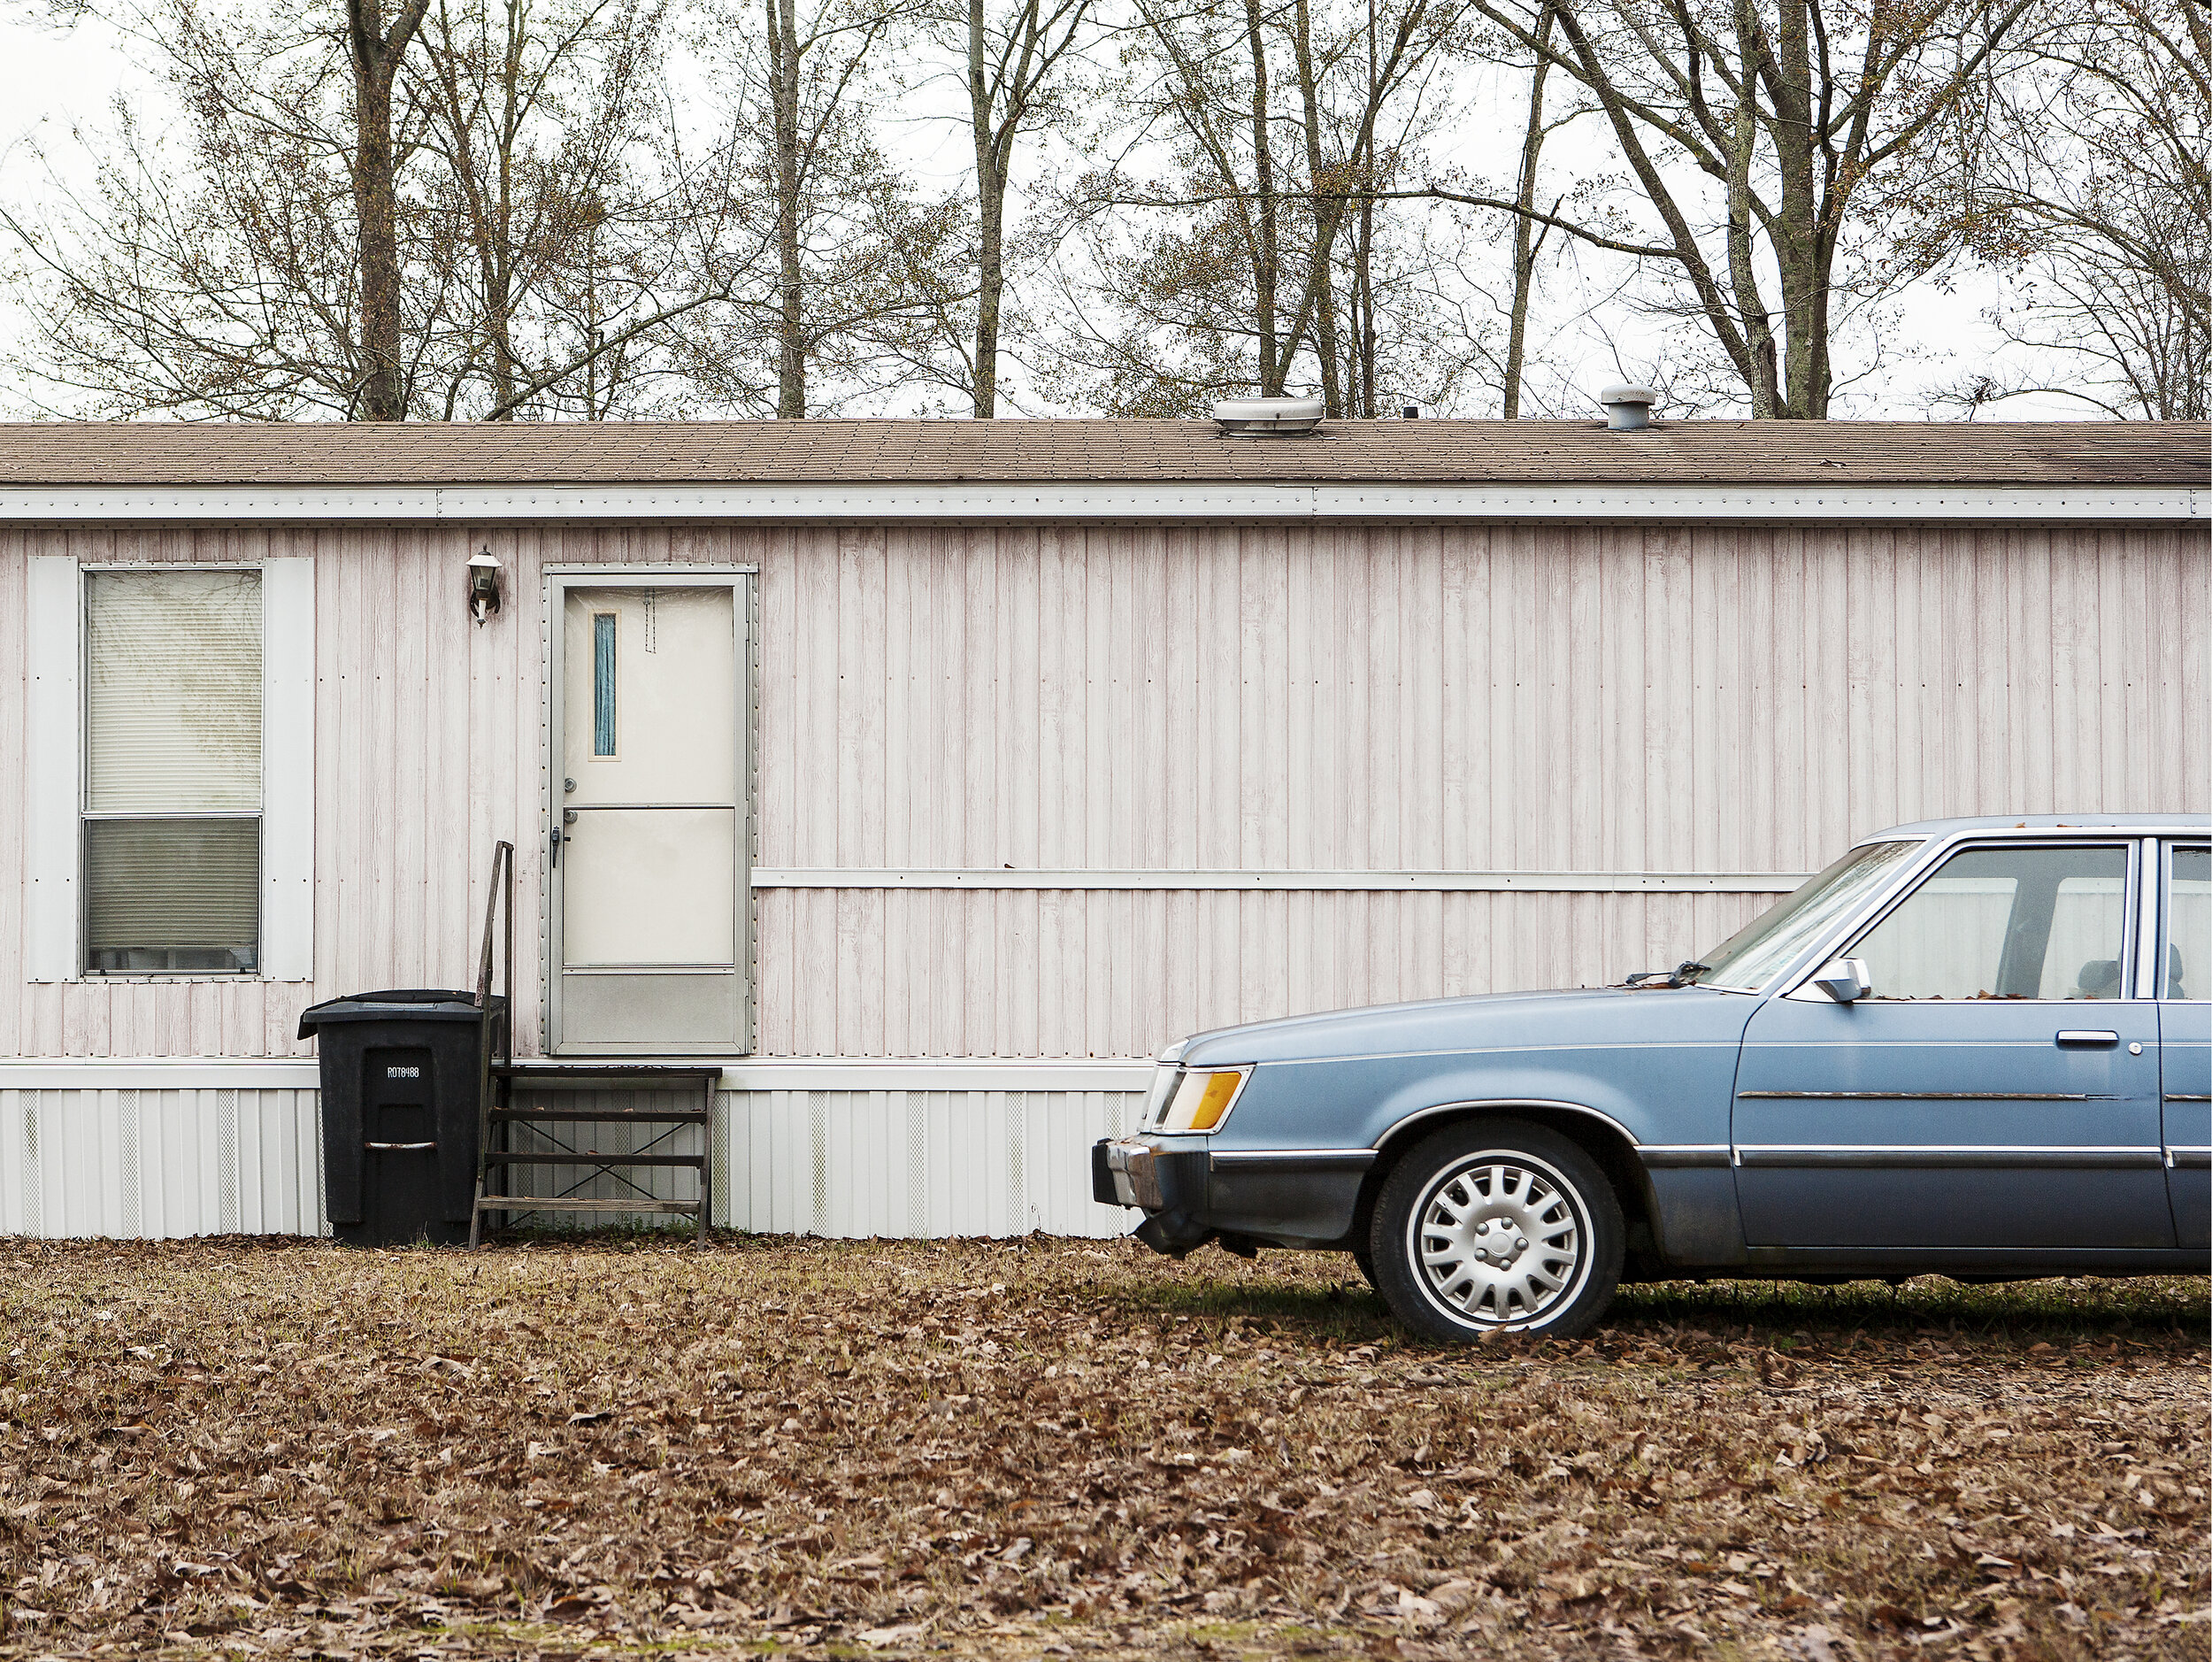 Pink Mobile Home and Blue Car - Archival Giclée Print on Hahnemühle Photo RagPrint: 77 x 60.8 cmEdition of 8 + 2AP